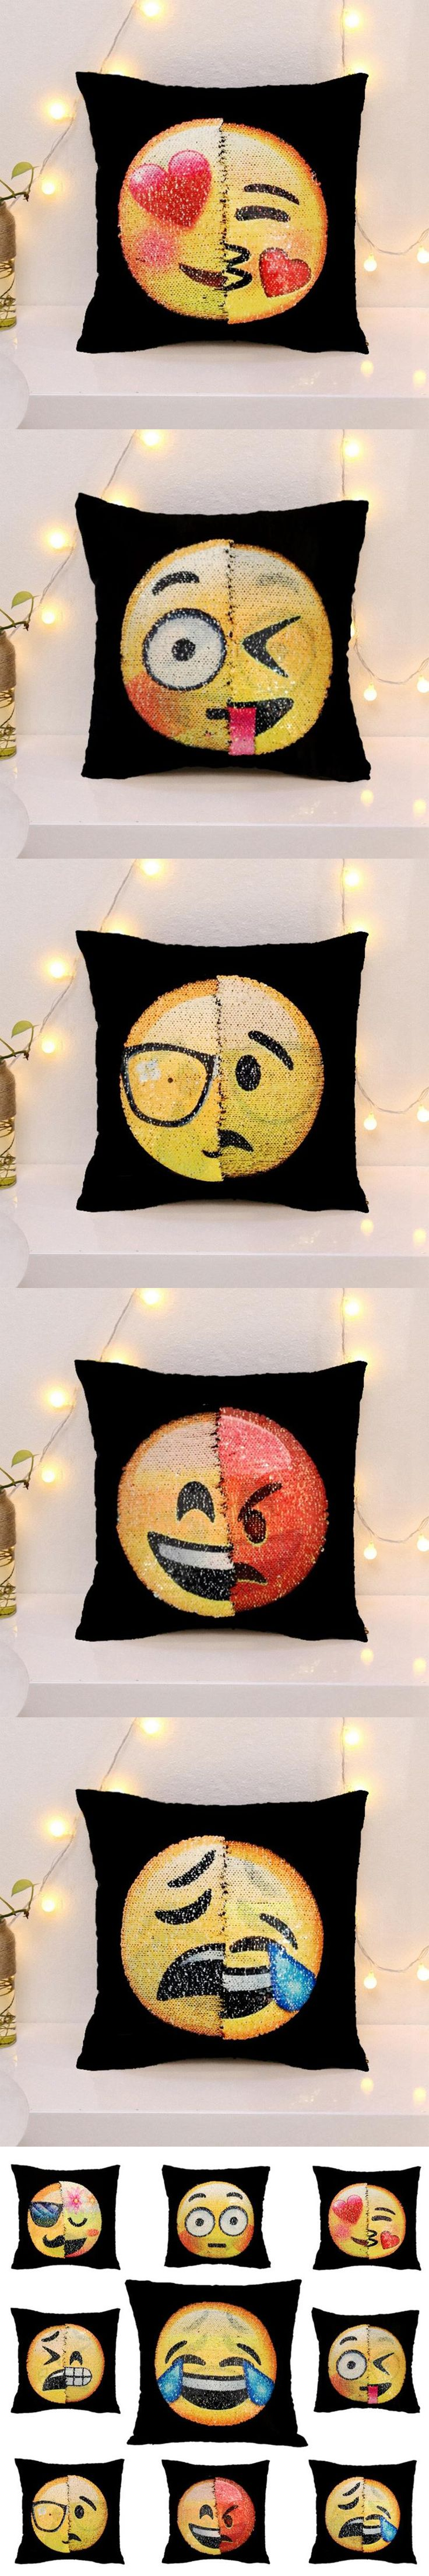 Funny Changing Face Emoji Cushion Cover DIY Sequin Mermaid Pillow Case Car Office Sofa Throw Decorative Pillowcase Home Decor